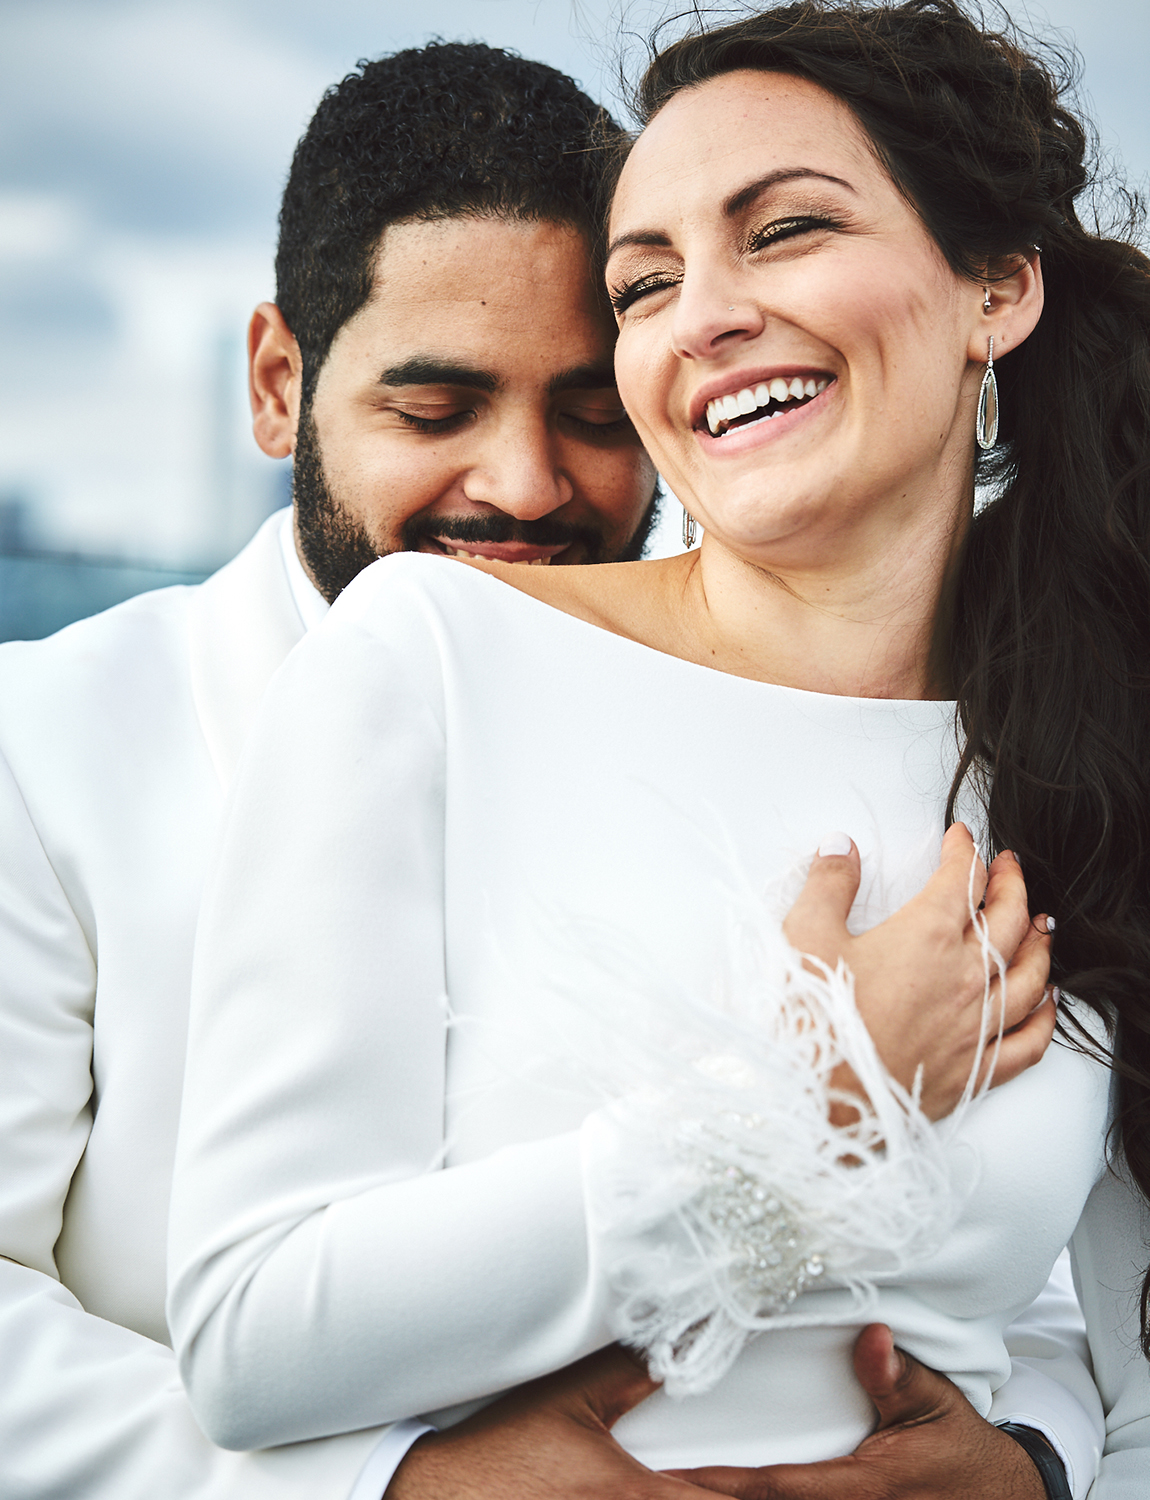 170930_WilliamValeWeddingPhotography_BrooklynWeddingPhotographer_By_BriJohnsonWeddings_0092.jpg